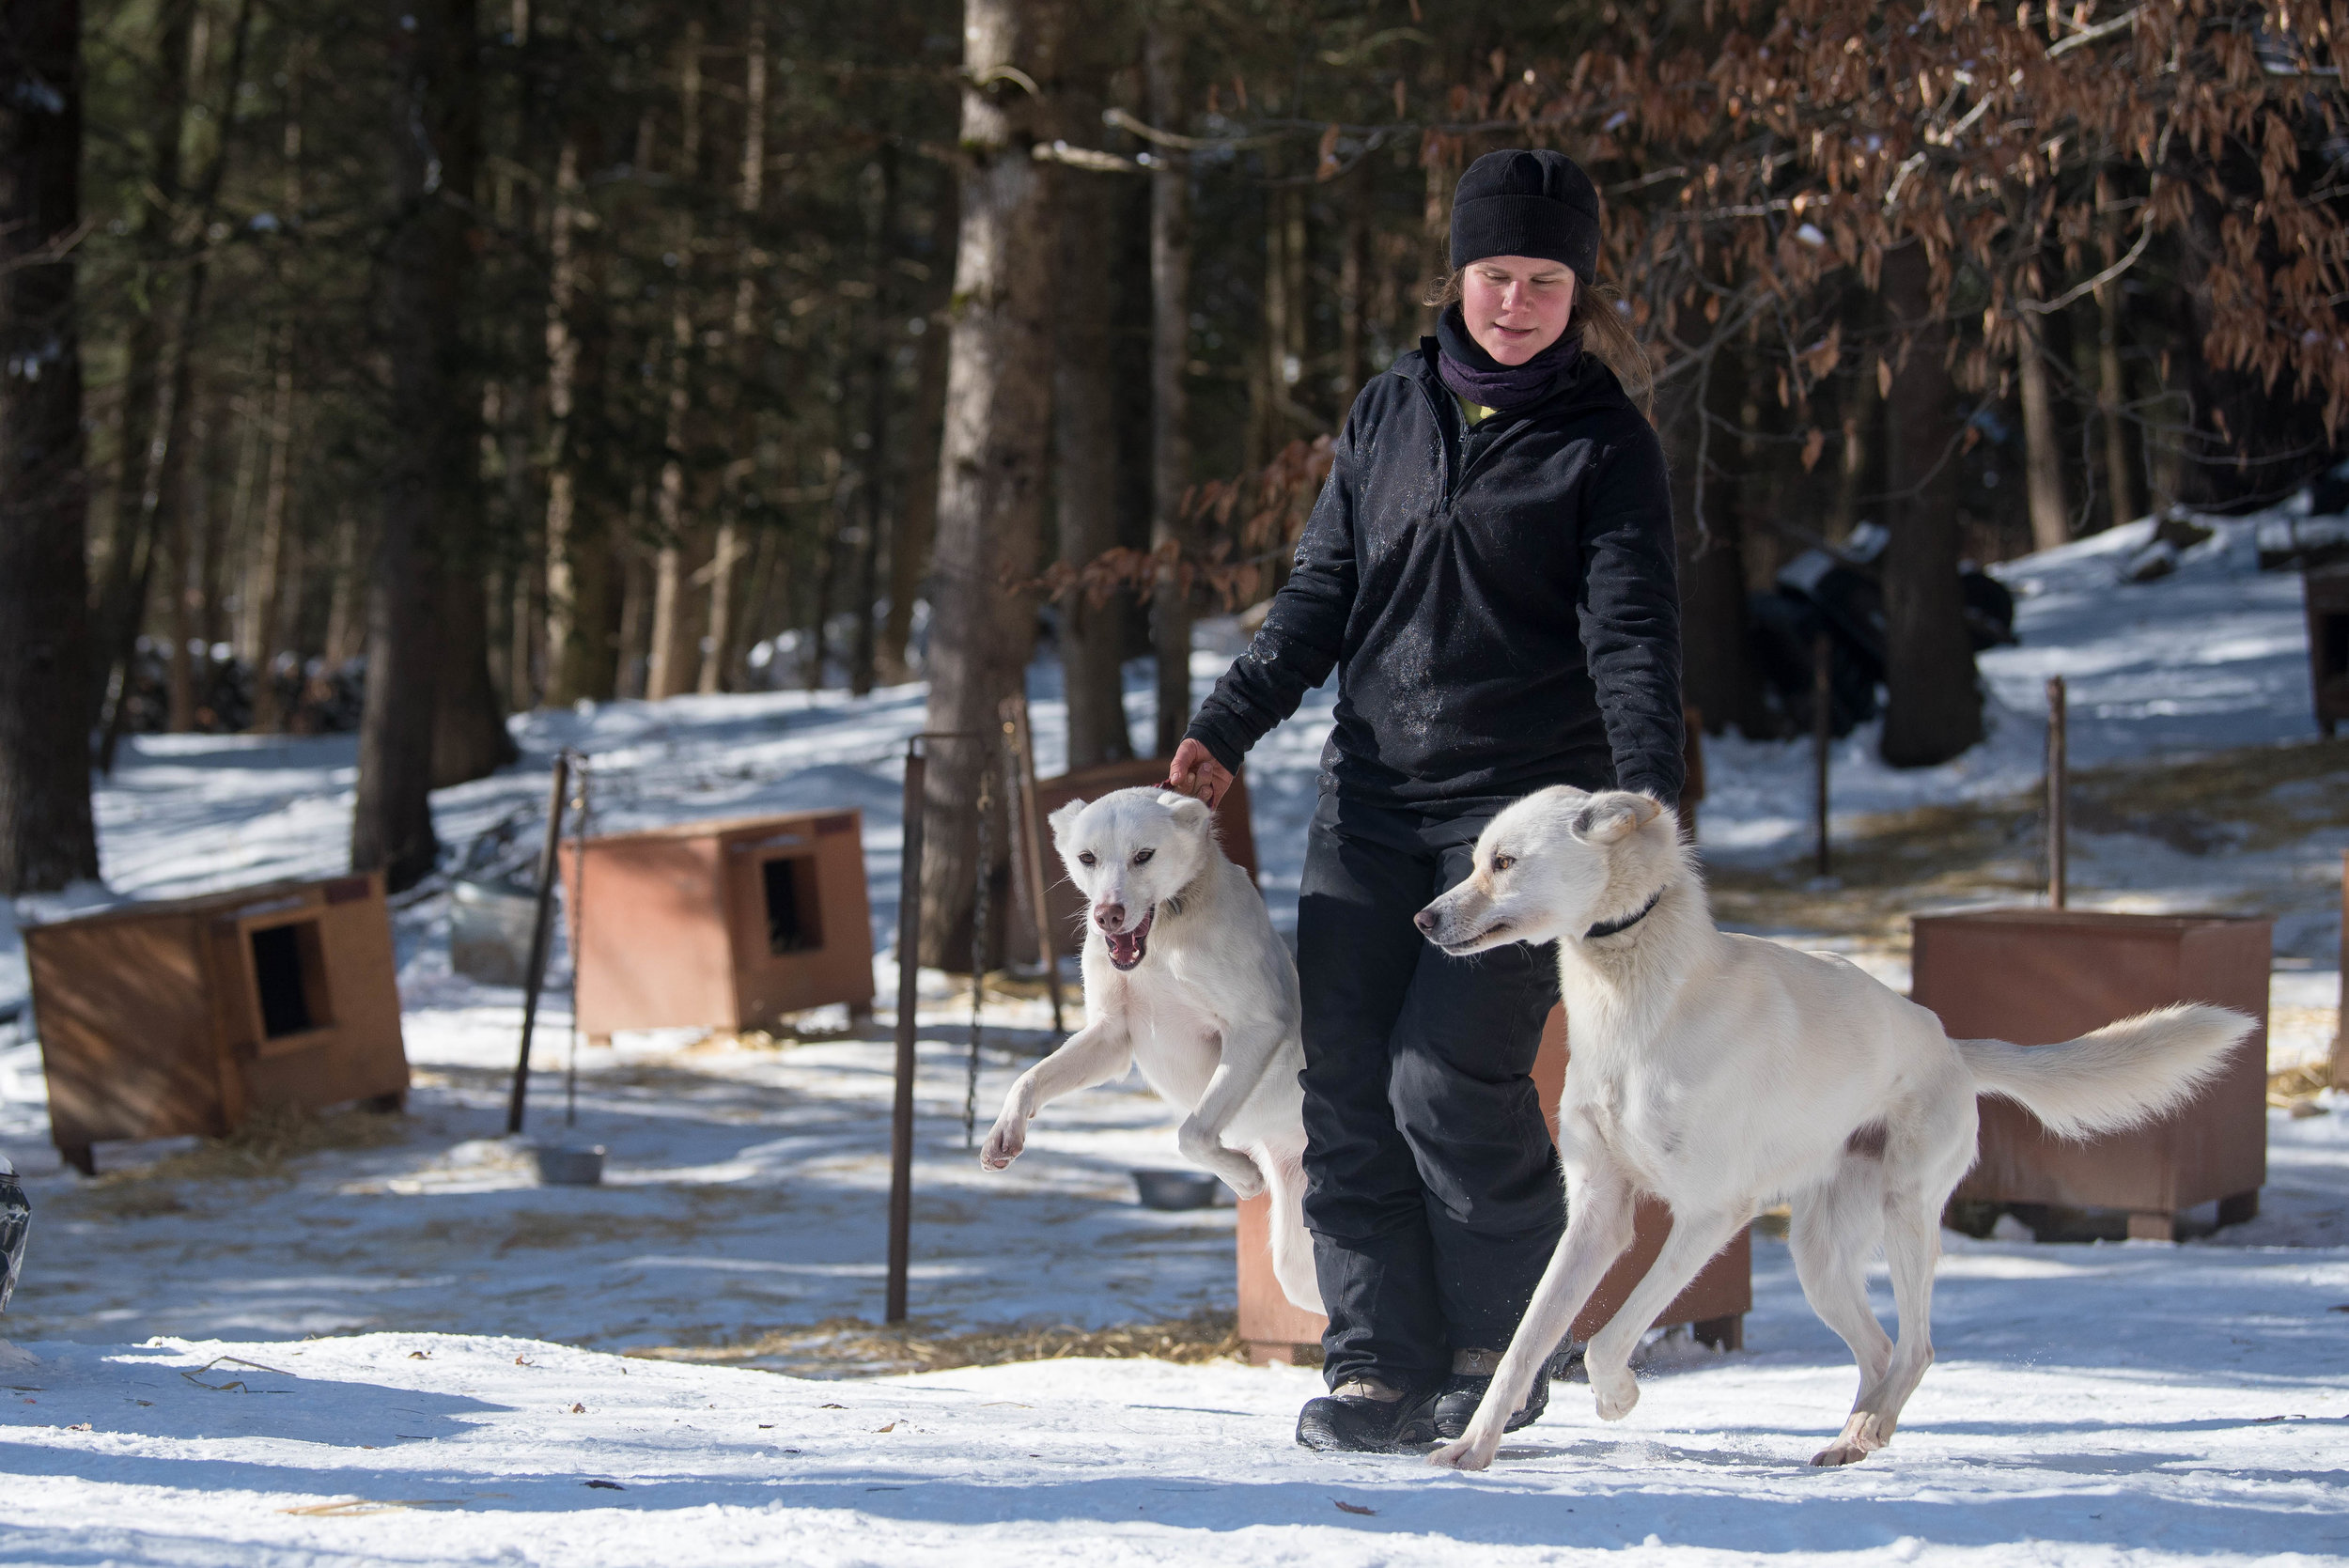 Handler Aurélie Lecoultre, who is abroad in Massachusetts from France to practice sports massage for animals, lends a helping hand at Hilltown Sleddogs.  Lecoultre keeps the dogs in tip-top shape, cleaning up after them, assisting with their raw feed diet, and checking their paws for contusions before each run.